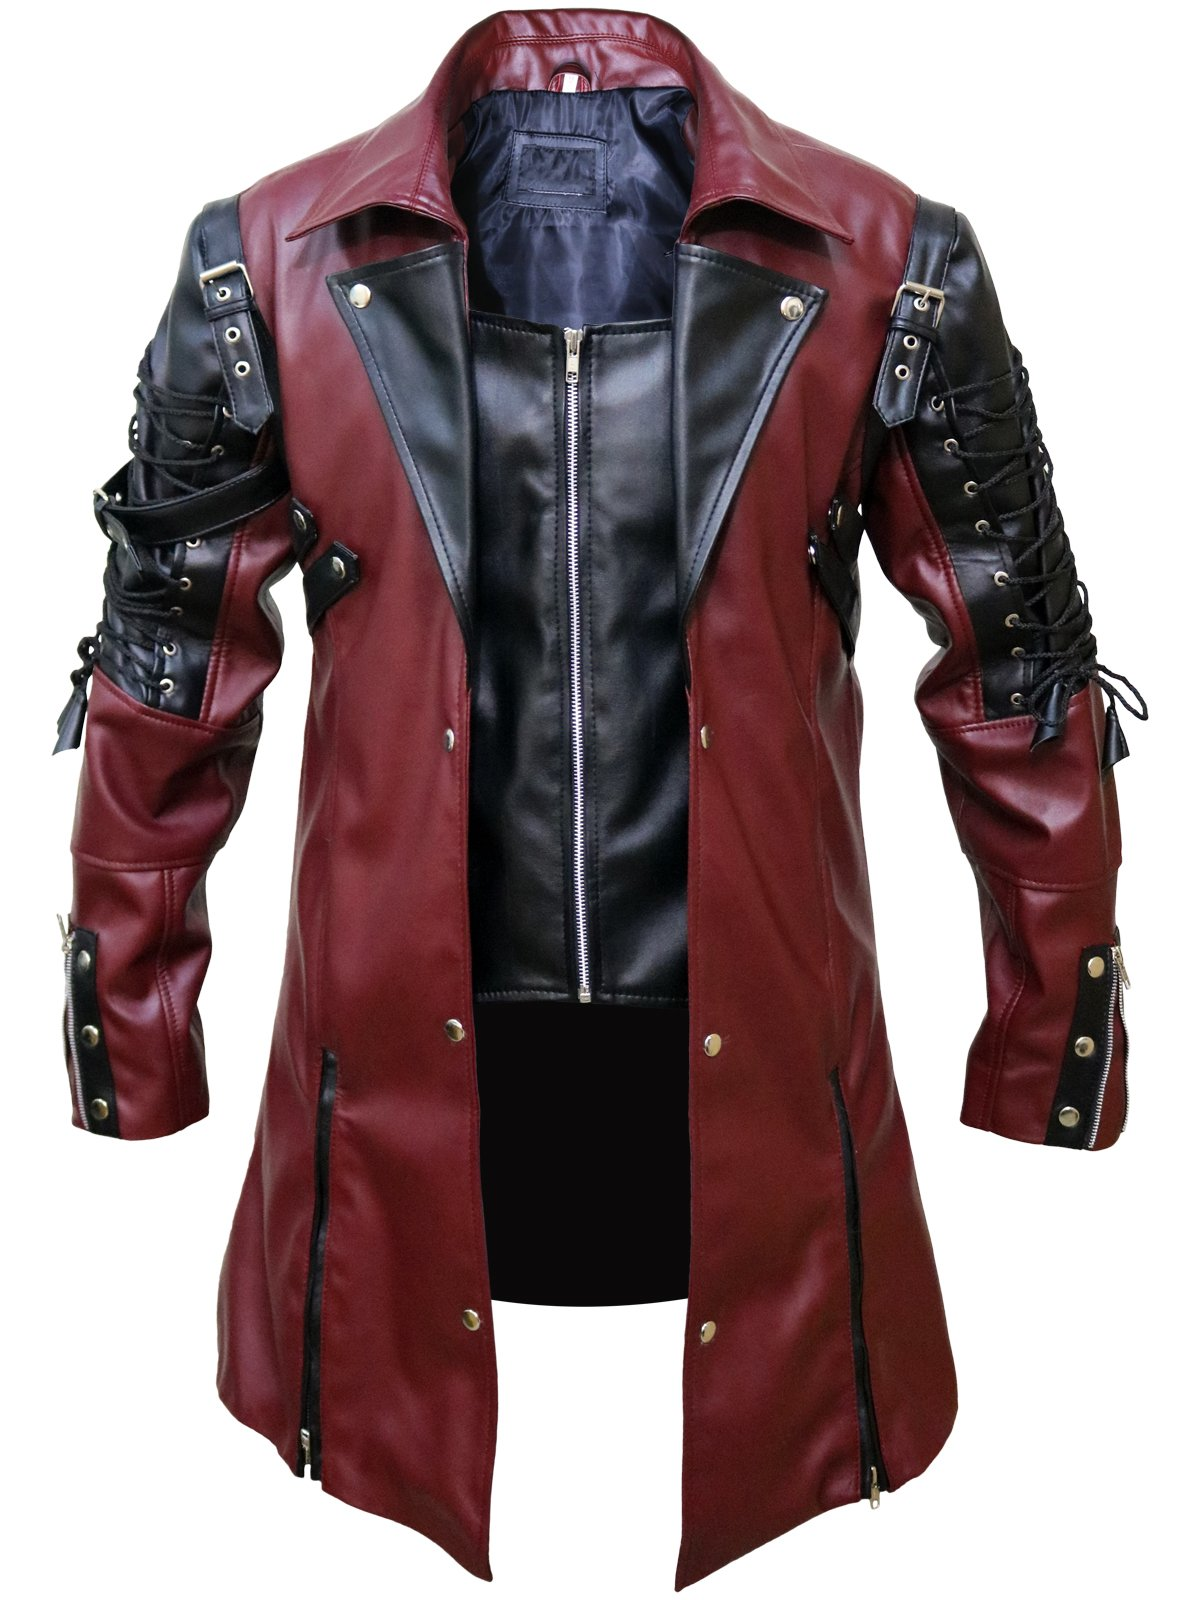 FaddyRox Steampunk Gothic Men Faux Leather Maroon & Black Coat Jacket, XXS - 3XL 3